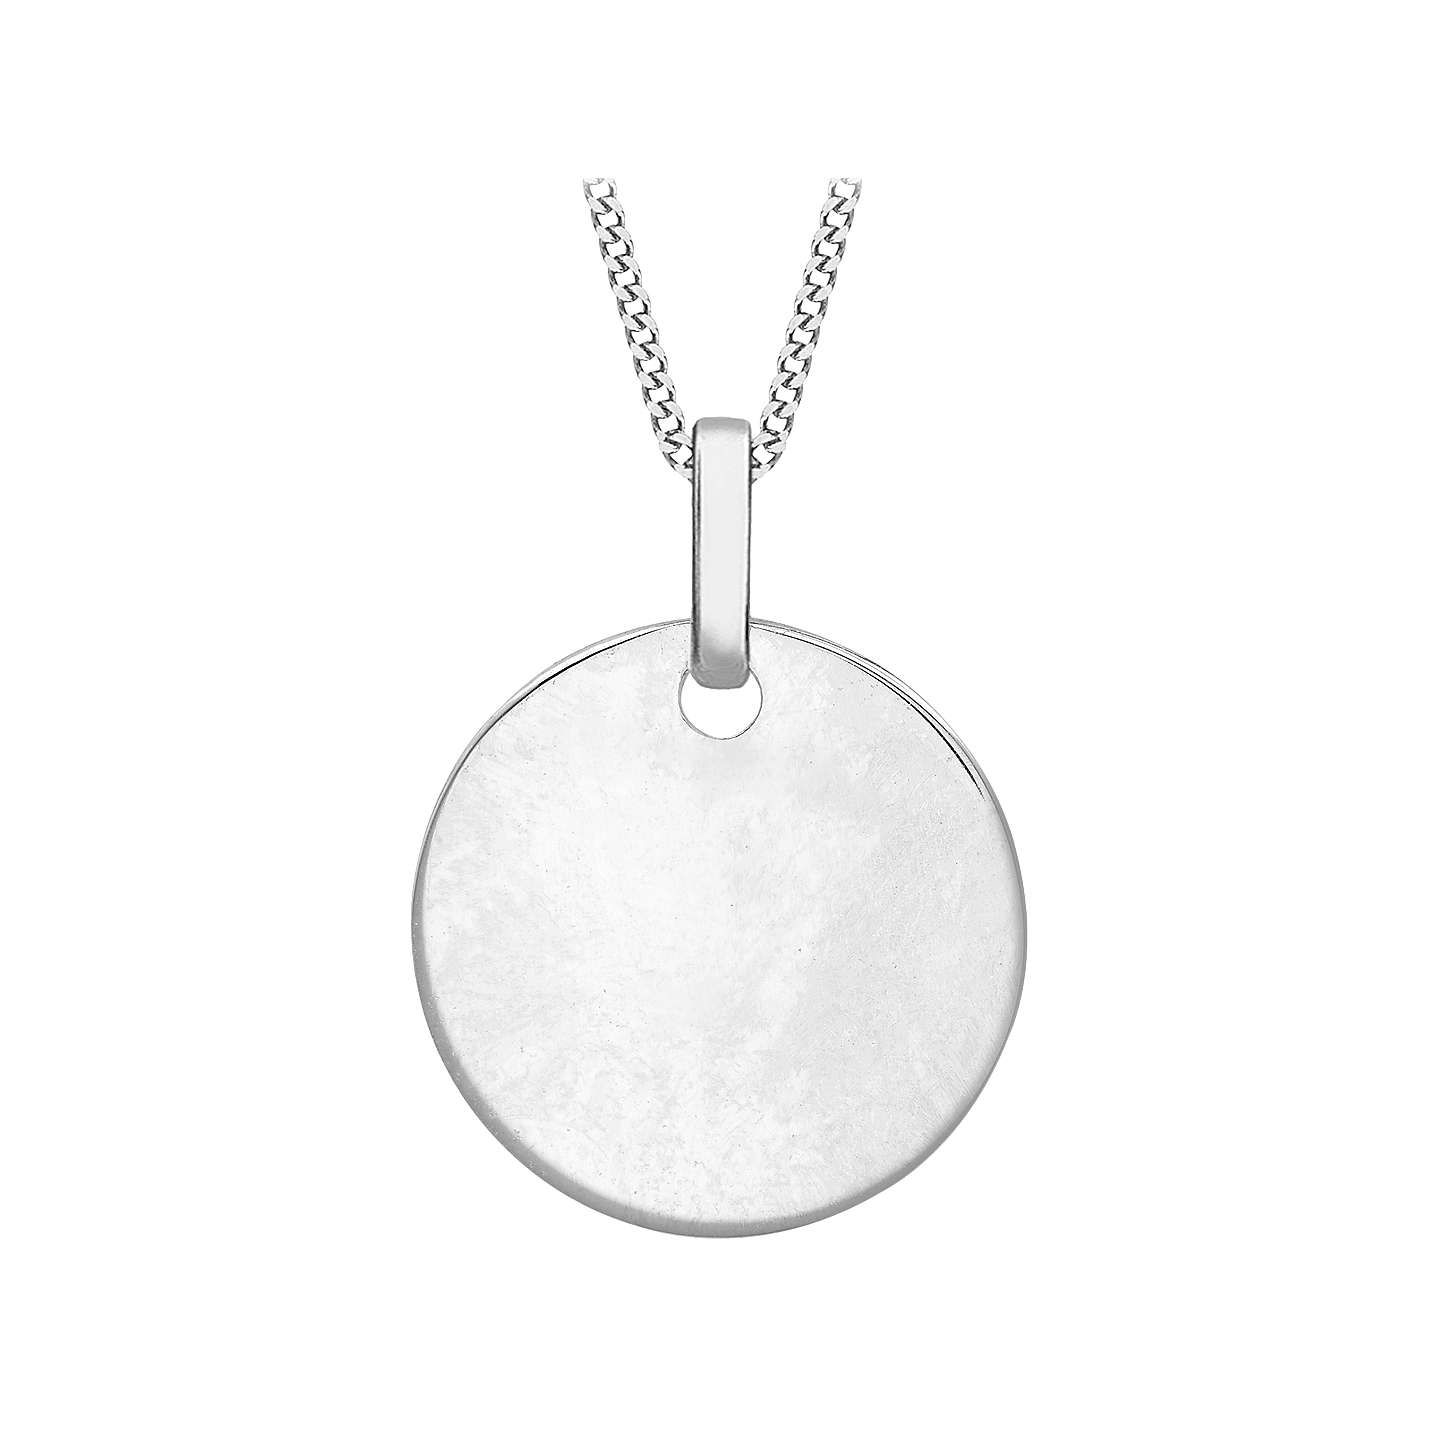 Melissa odabash crystal disc pendant necklace silver melissa buyibb personalised 9ct gold disc initial pendant necklace white gold online at johnlewis aloadofball Images